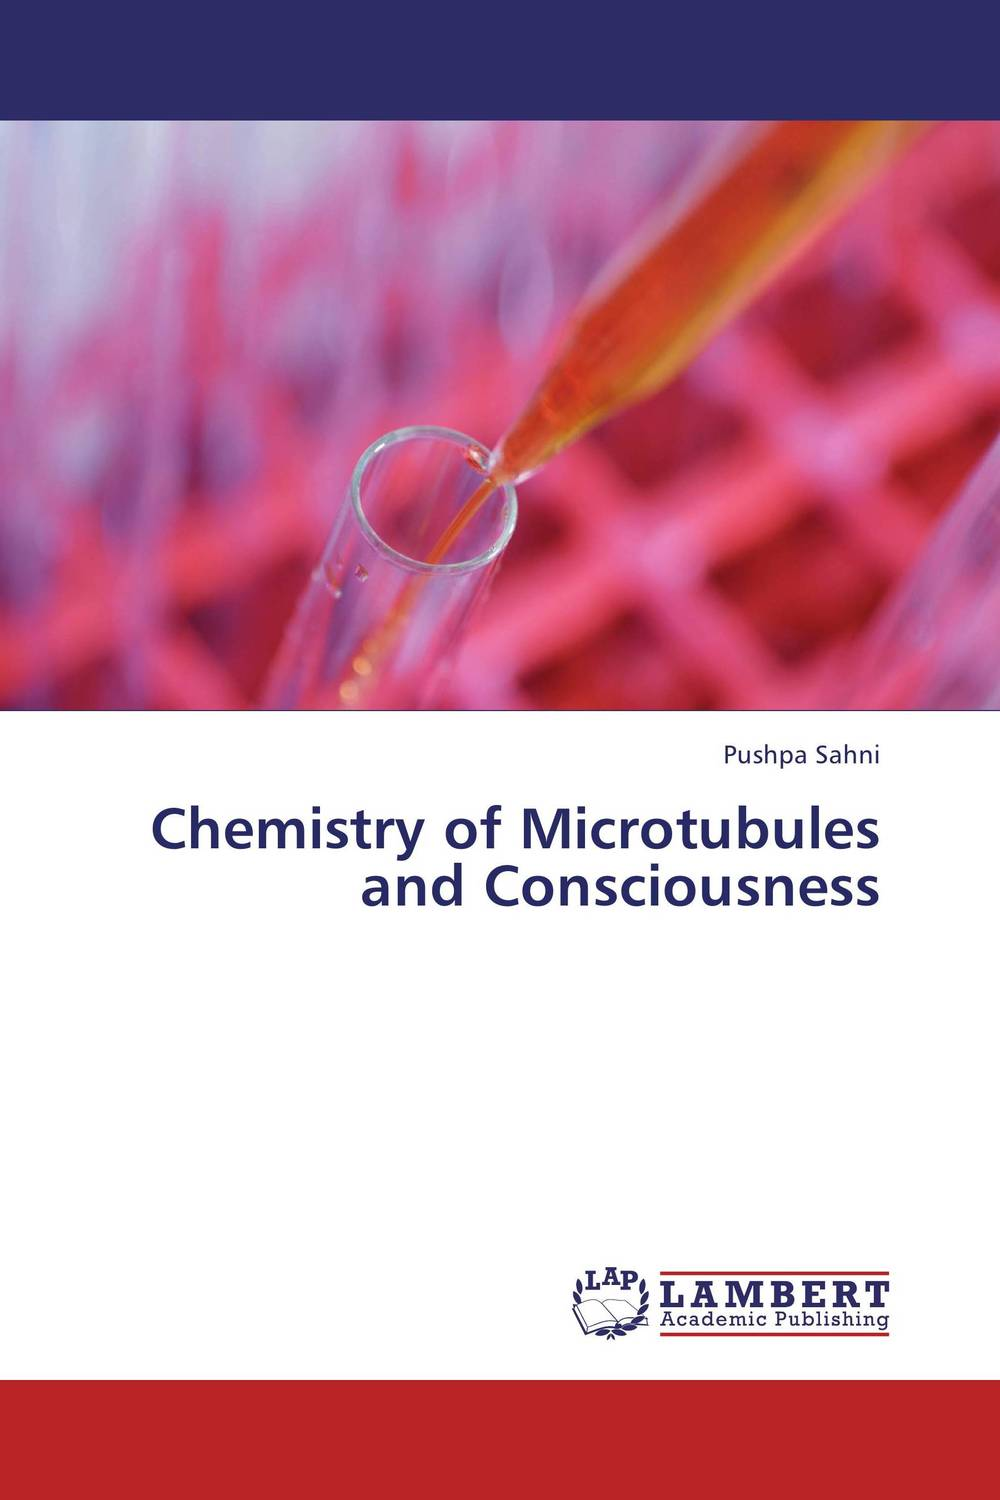 Chemistry of Microtubules and Consciousness н а степанова практический курс английского языка для студентов химиков about the foundations of chemistry a practical course of english for the first year chemistry students